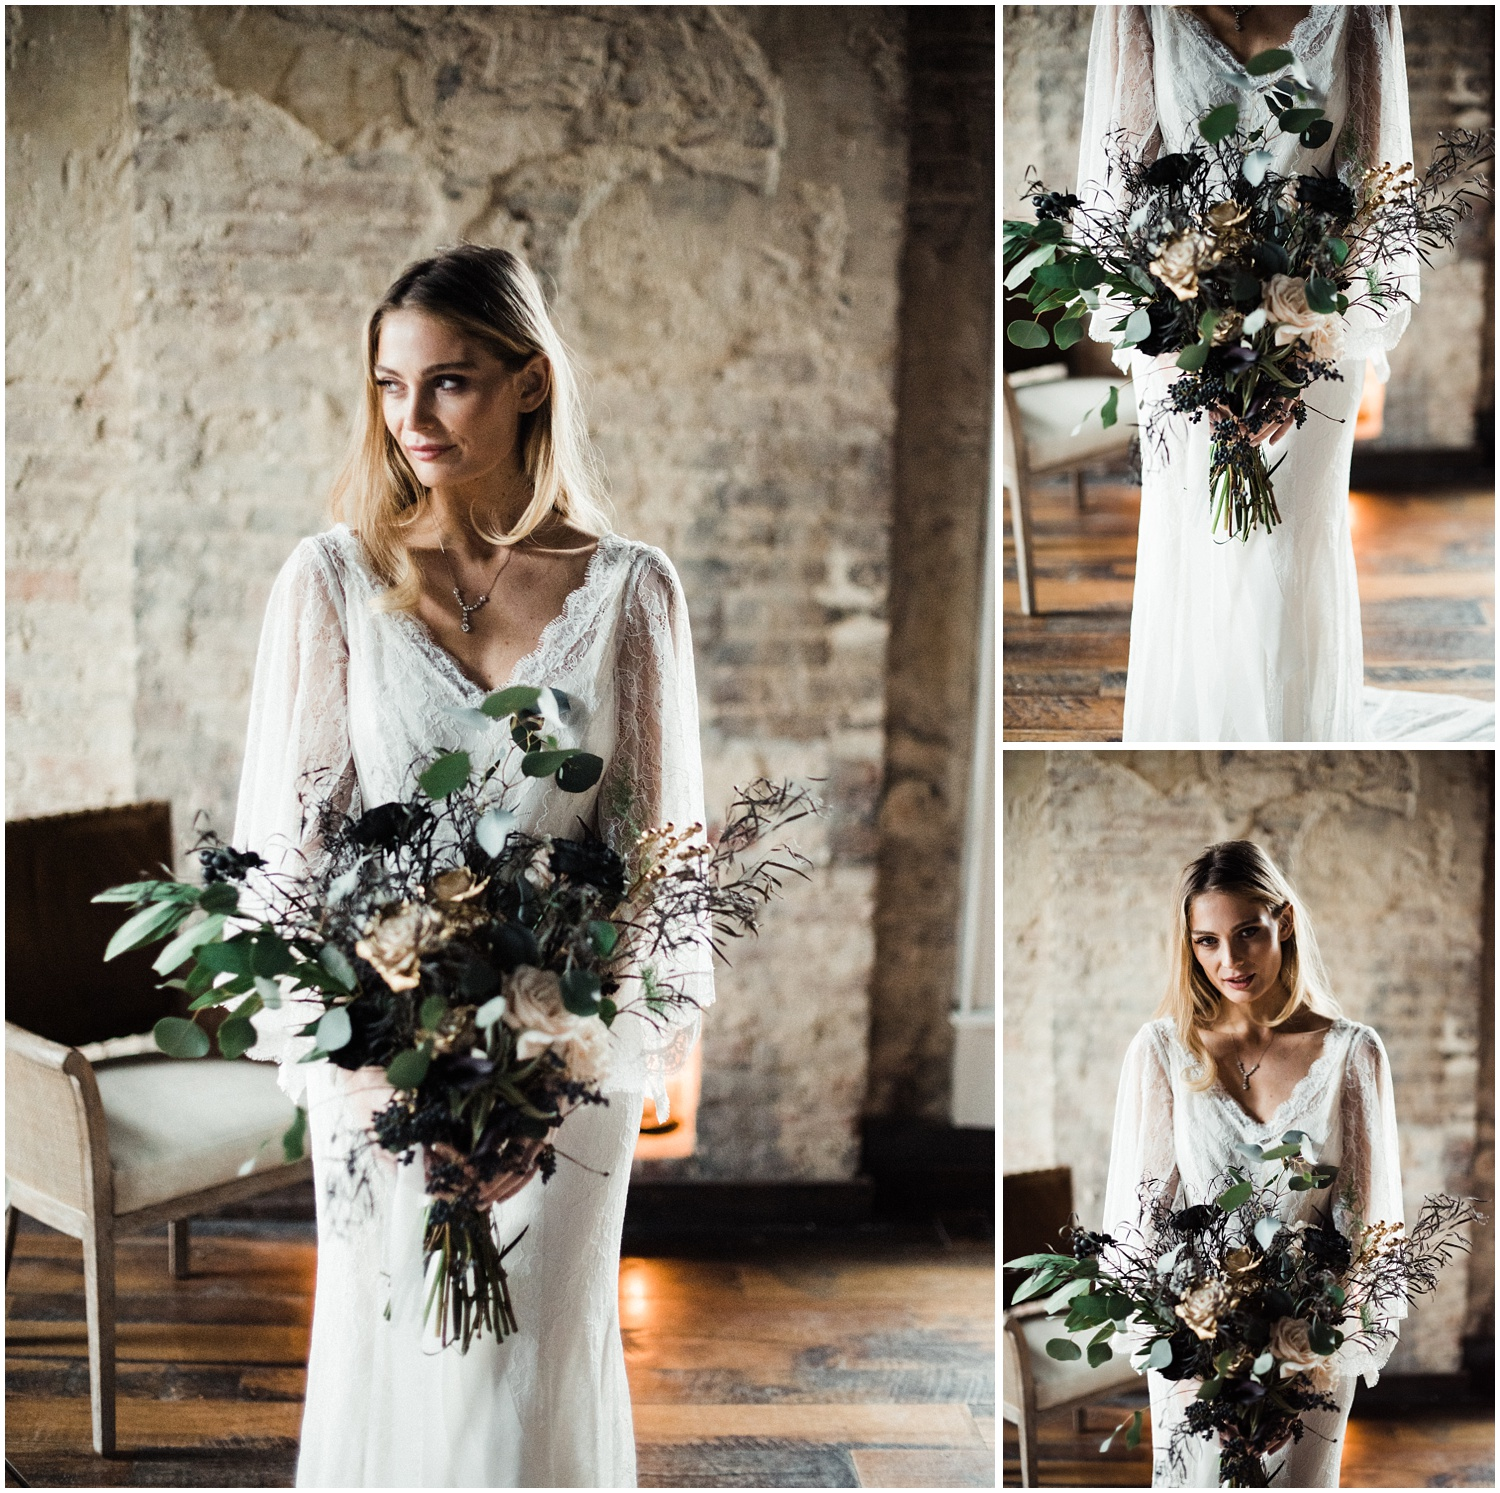 Aimee Thomas _Midwest Ohio Photographer_Modern Wedding Styled Shoot Nashville Tennessee_The Cordelle_0071.jpg